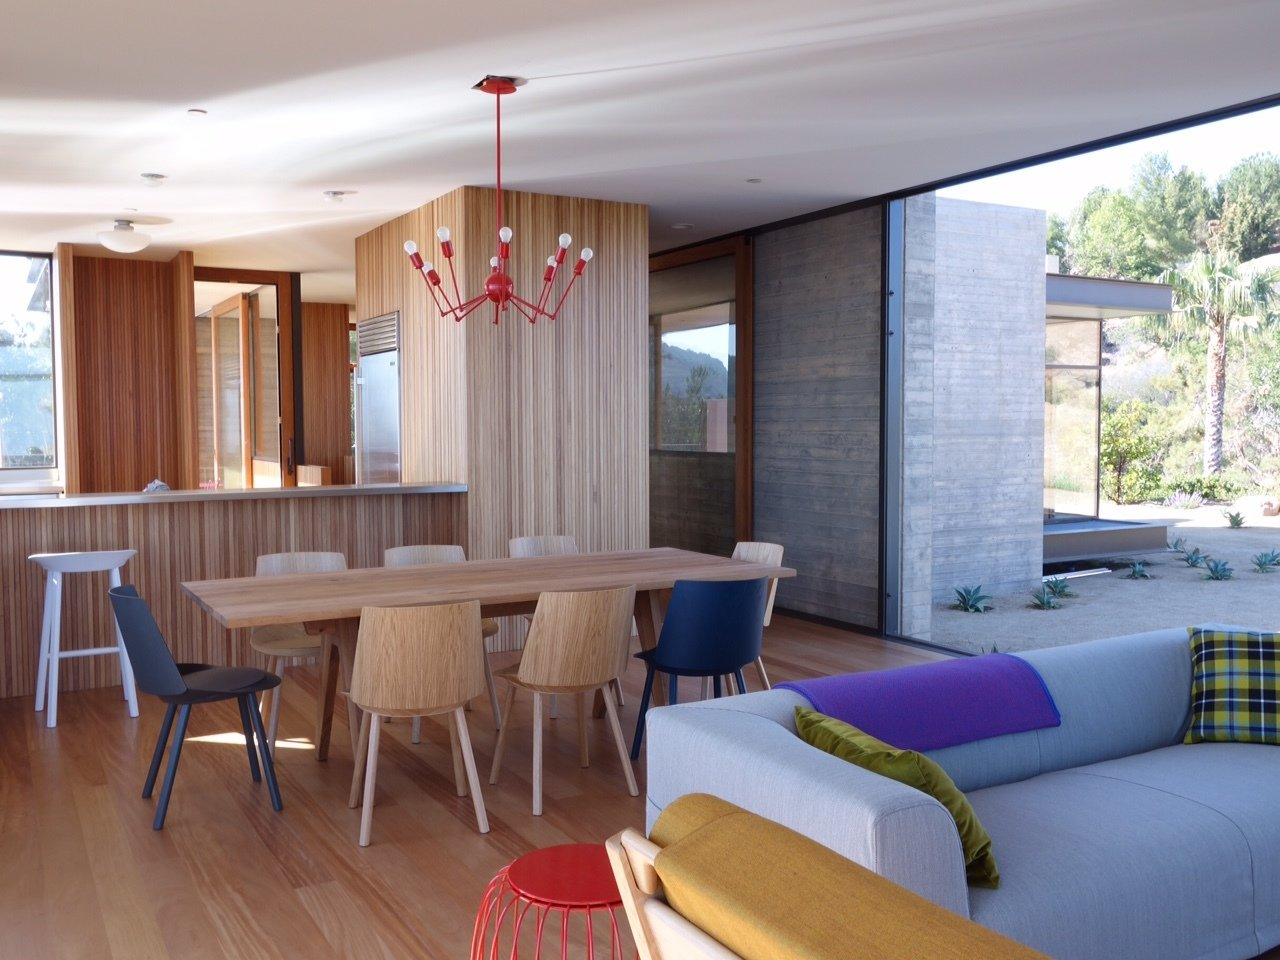 Dining Room, Medium Hardwood Floor, and Accent Lighting  Photo 3 of 13 in Take Your Next Vacation in a Midcentury Home in the Santa Monica Mountains